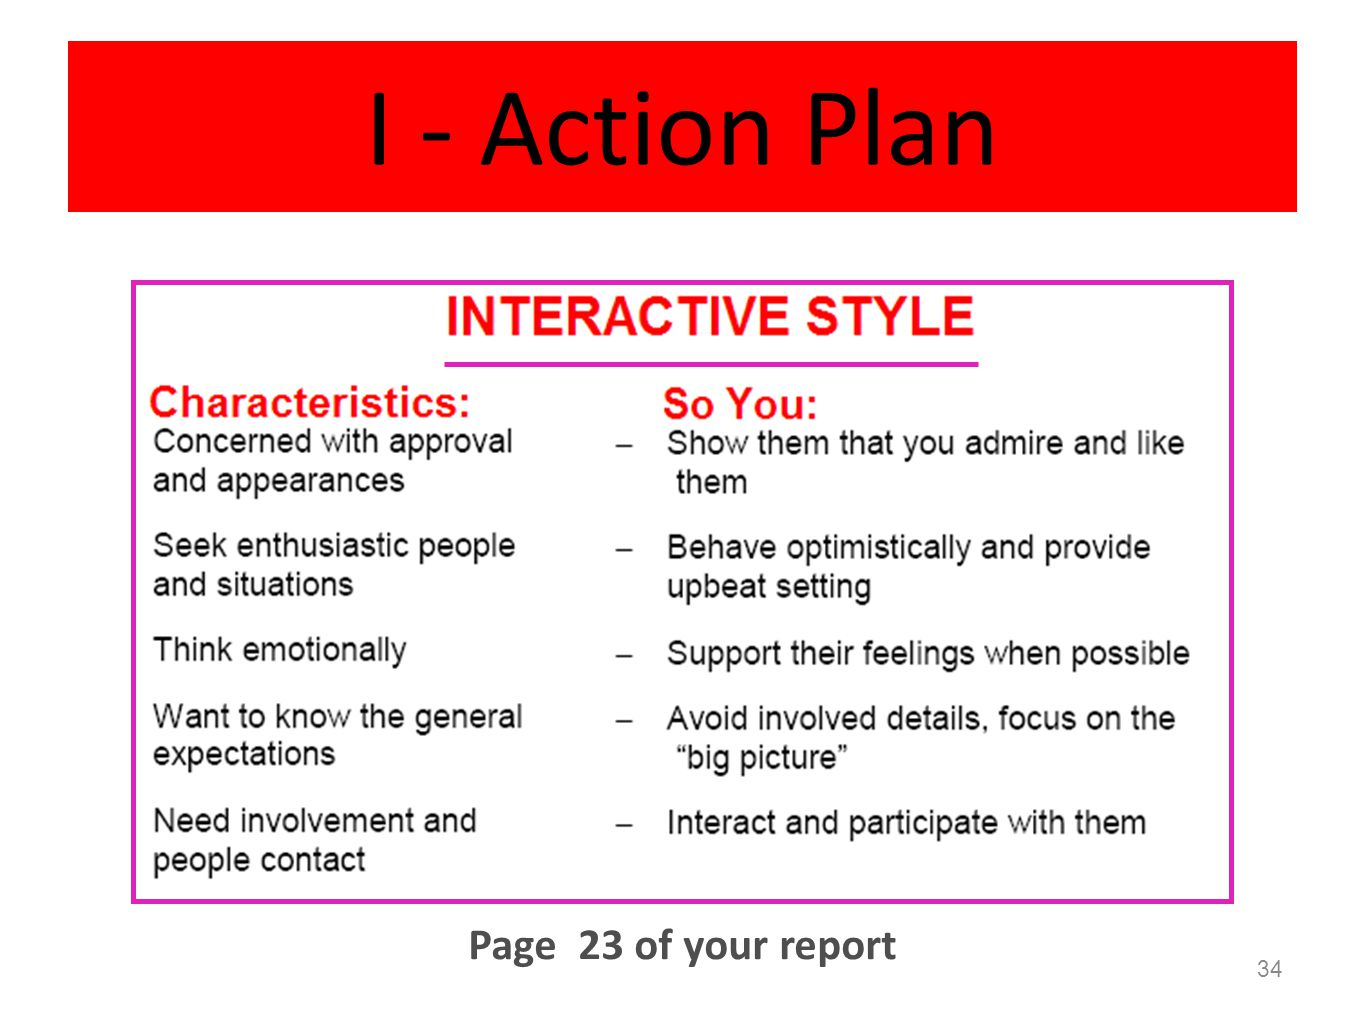 I - Action Plan Optional slide. Page 23 of your report